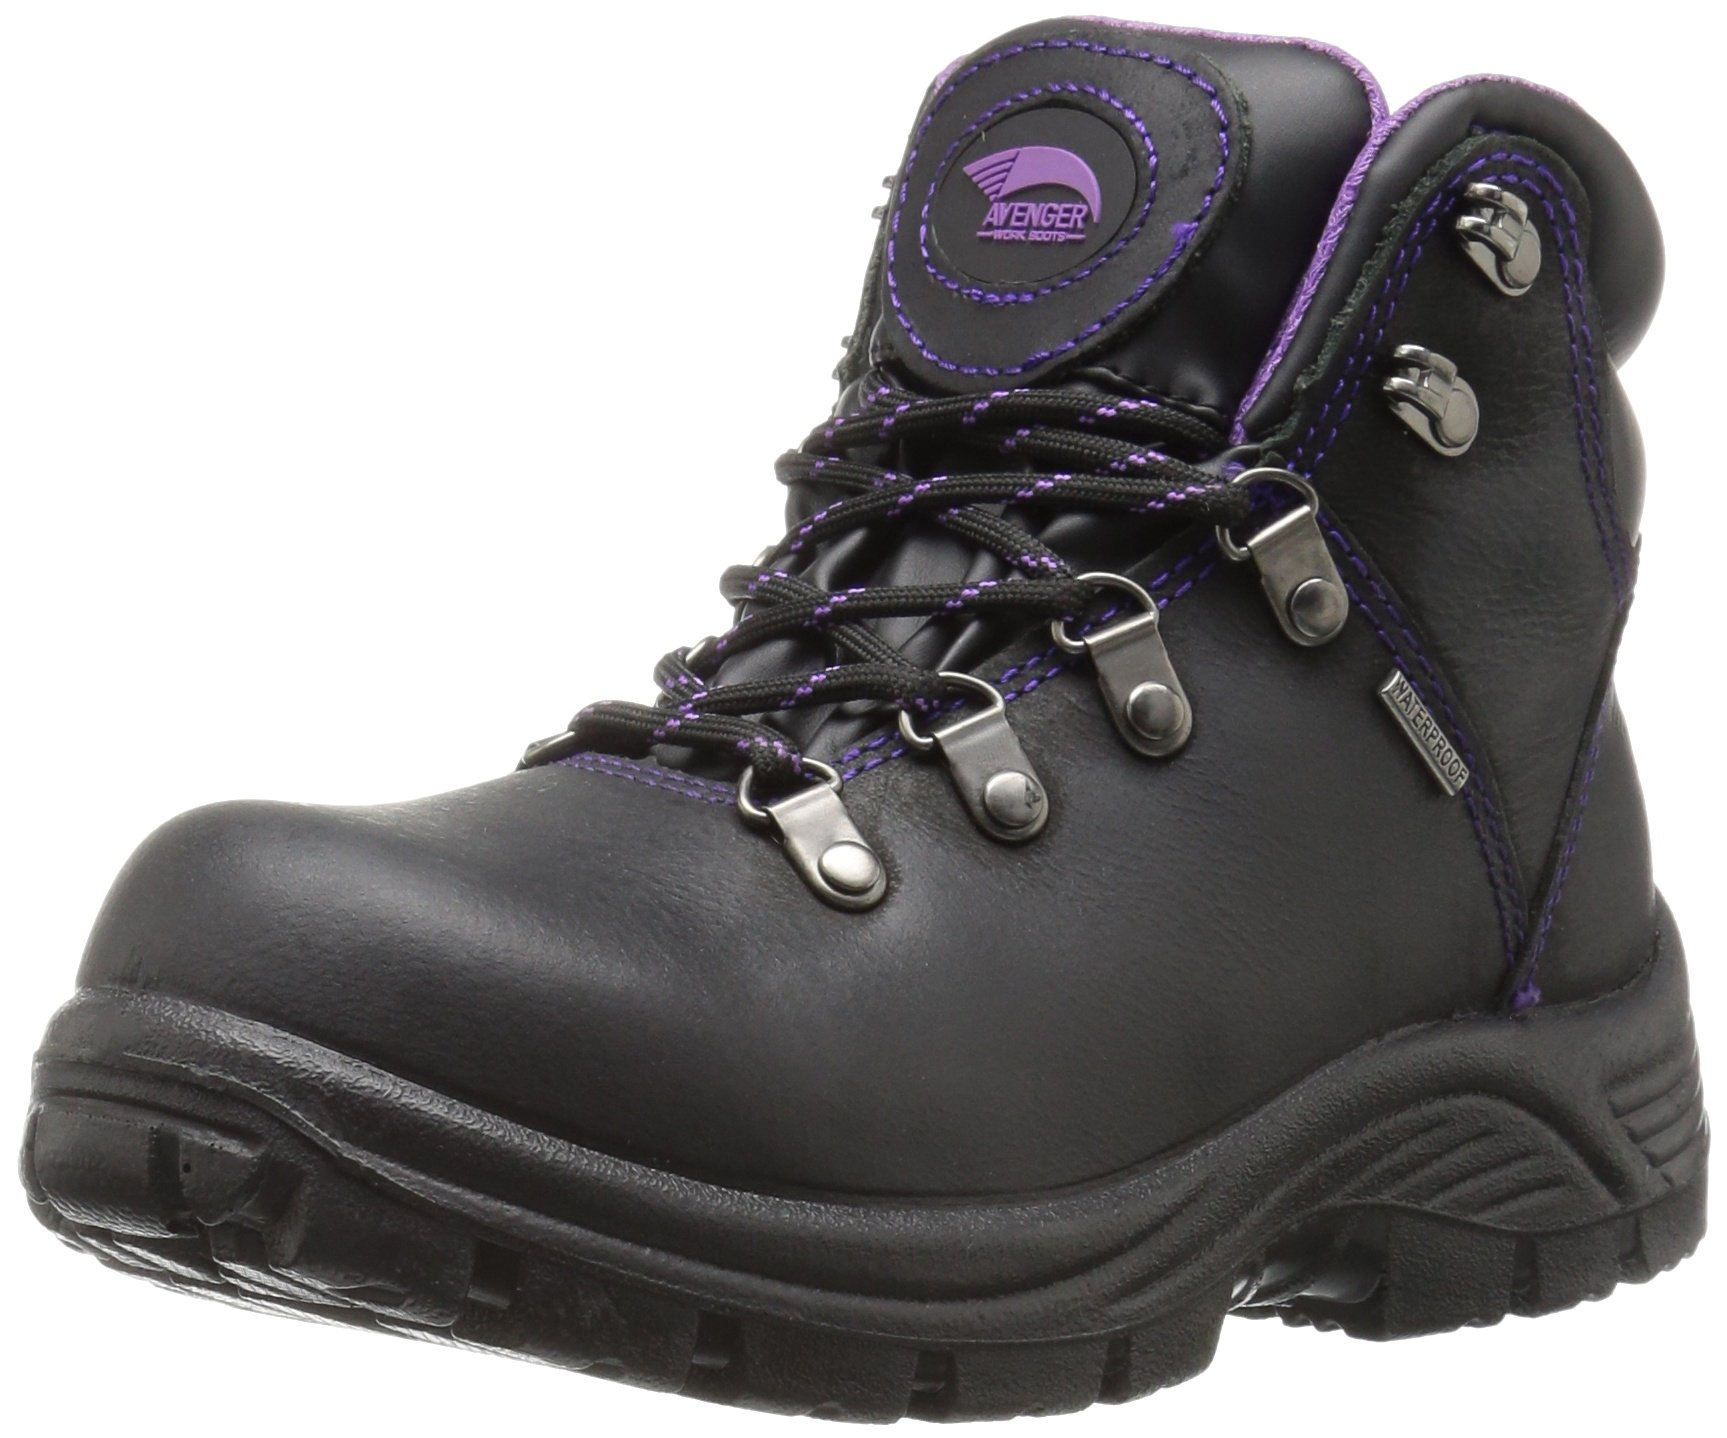 Avenger Safety Footwear Women's Avenger 7124 Waterproof Safety Toe EH SR Hiker Industrial and Construction Shoe, Black, 9.5 M US